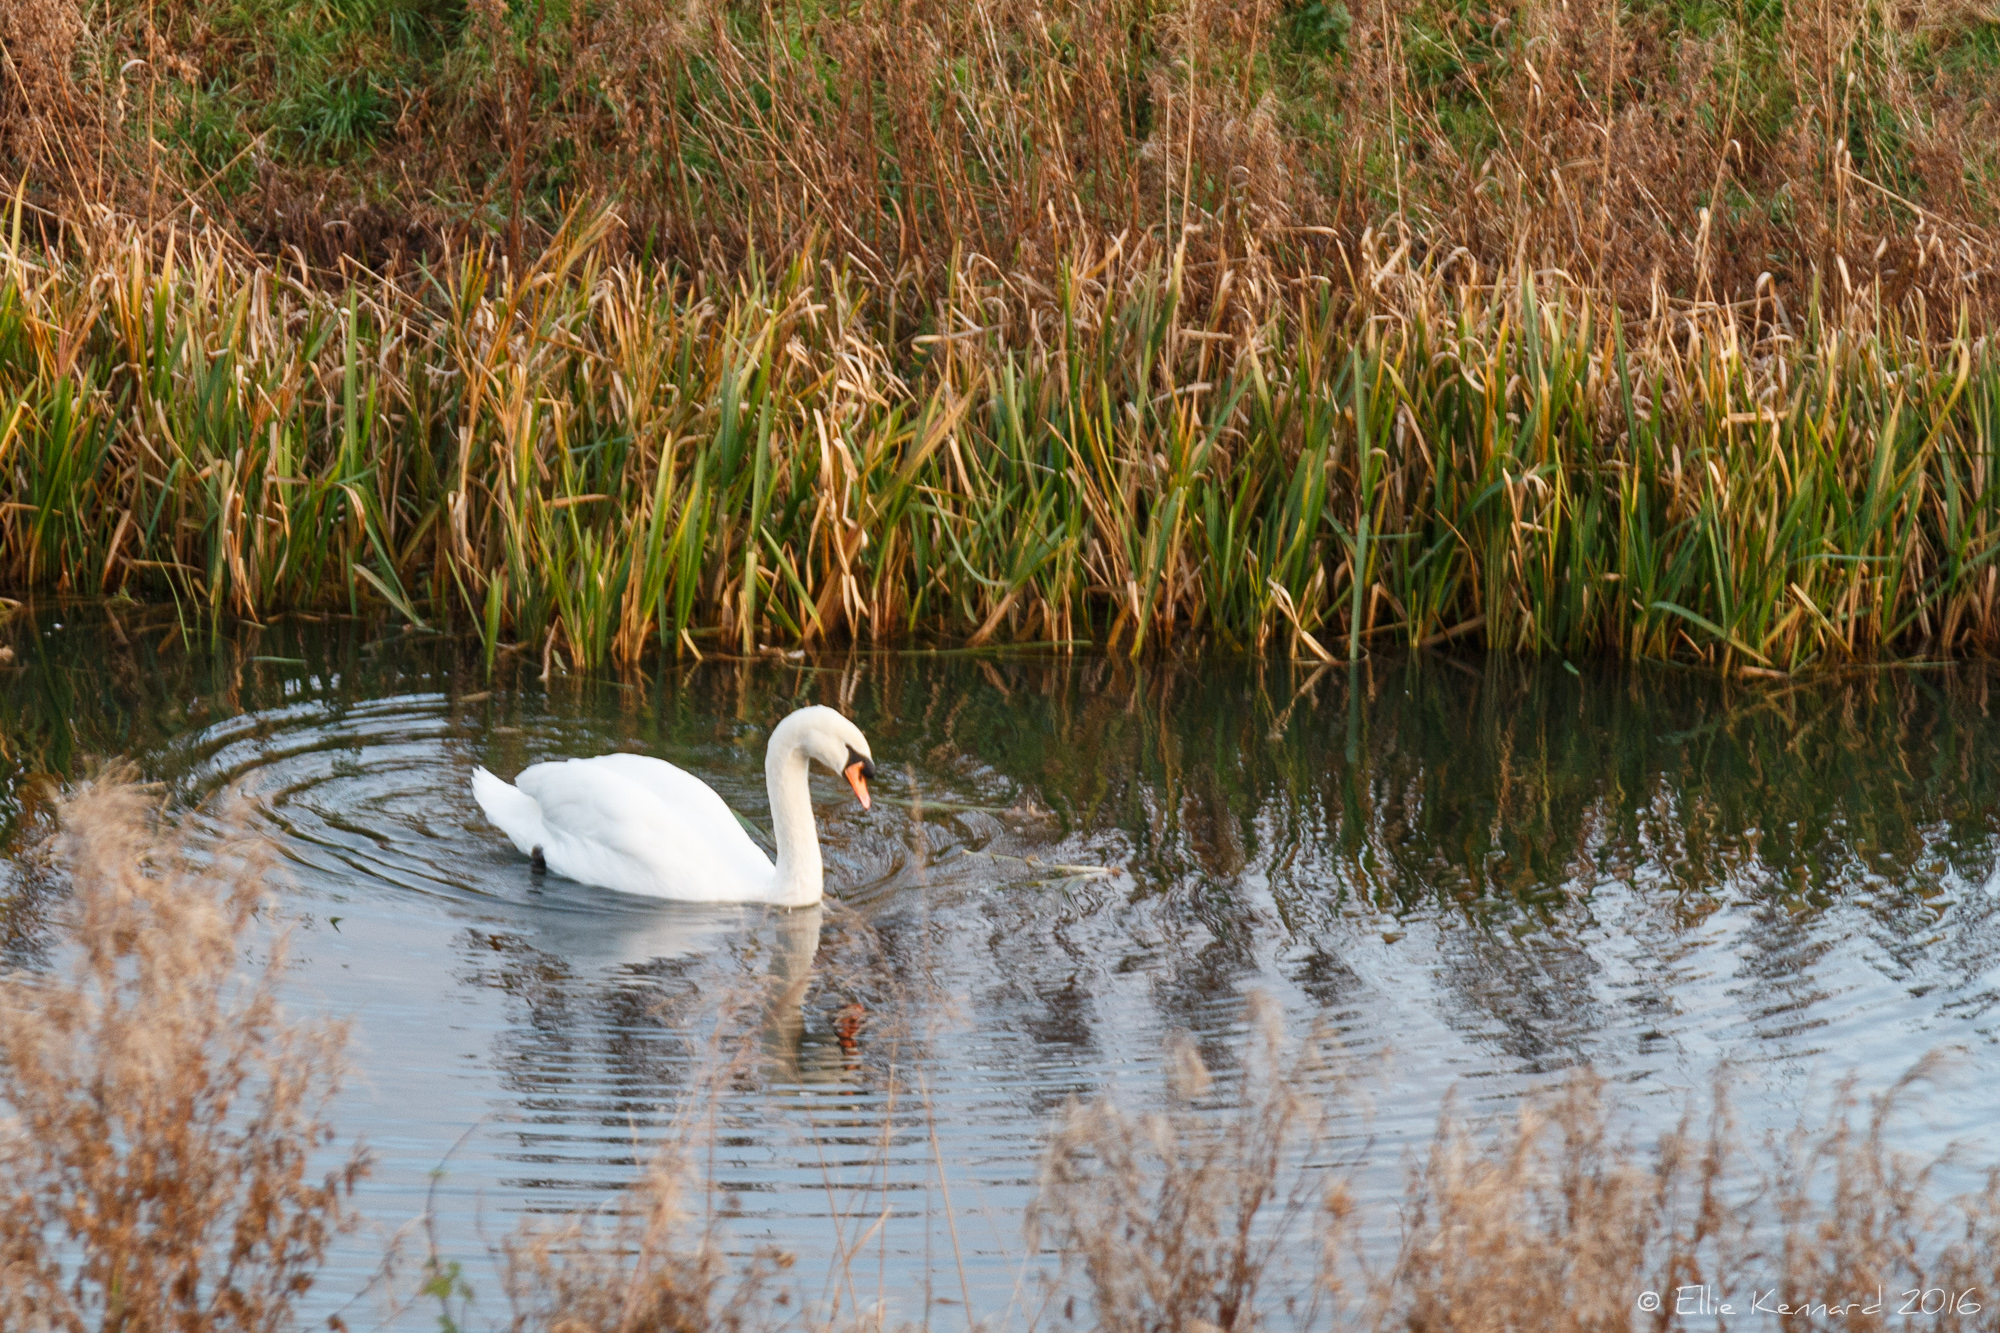 Swan by the river Witham, Lincs - Ellie Kennard 2016